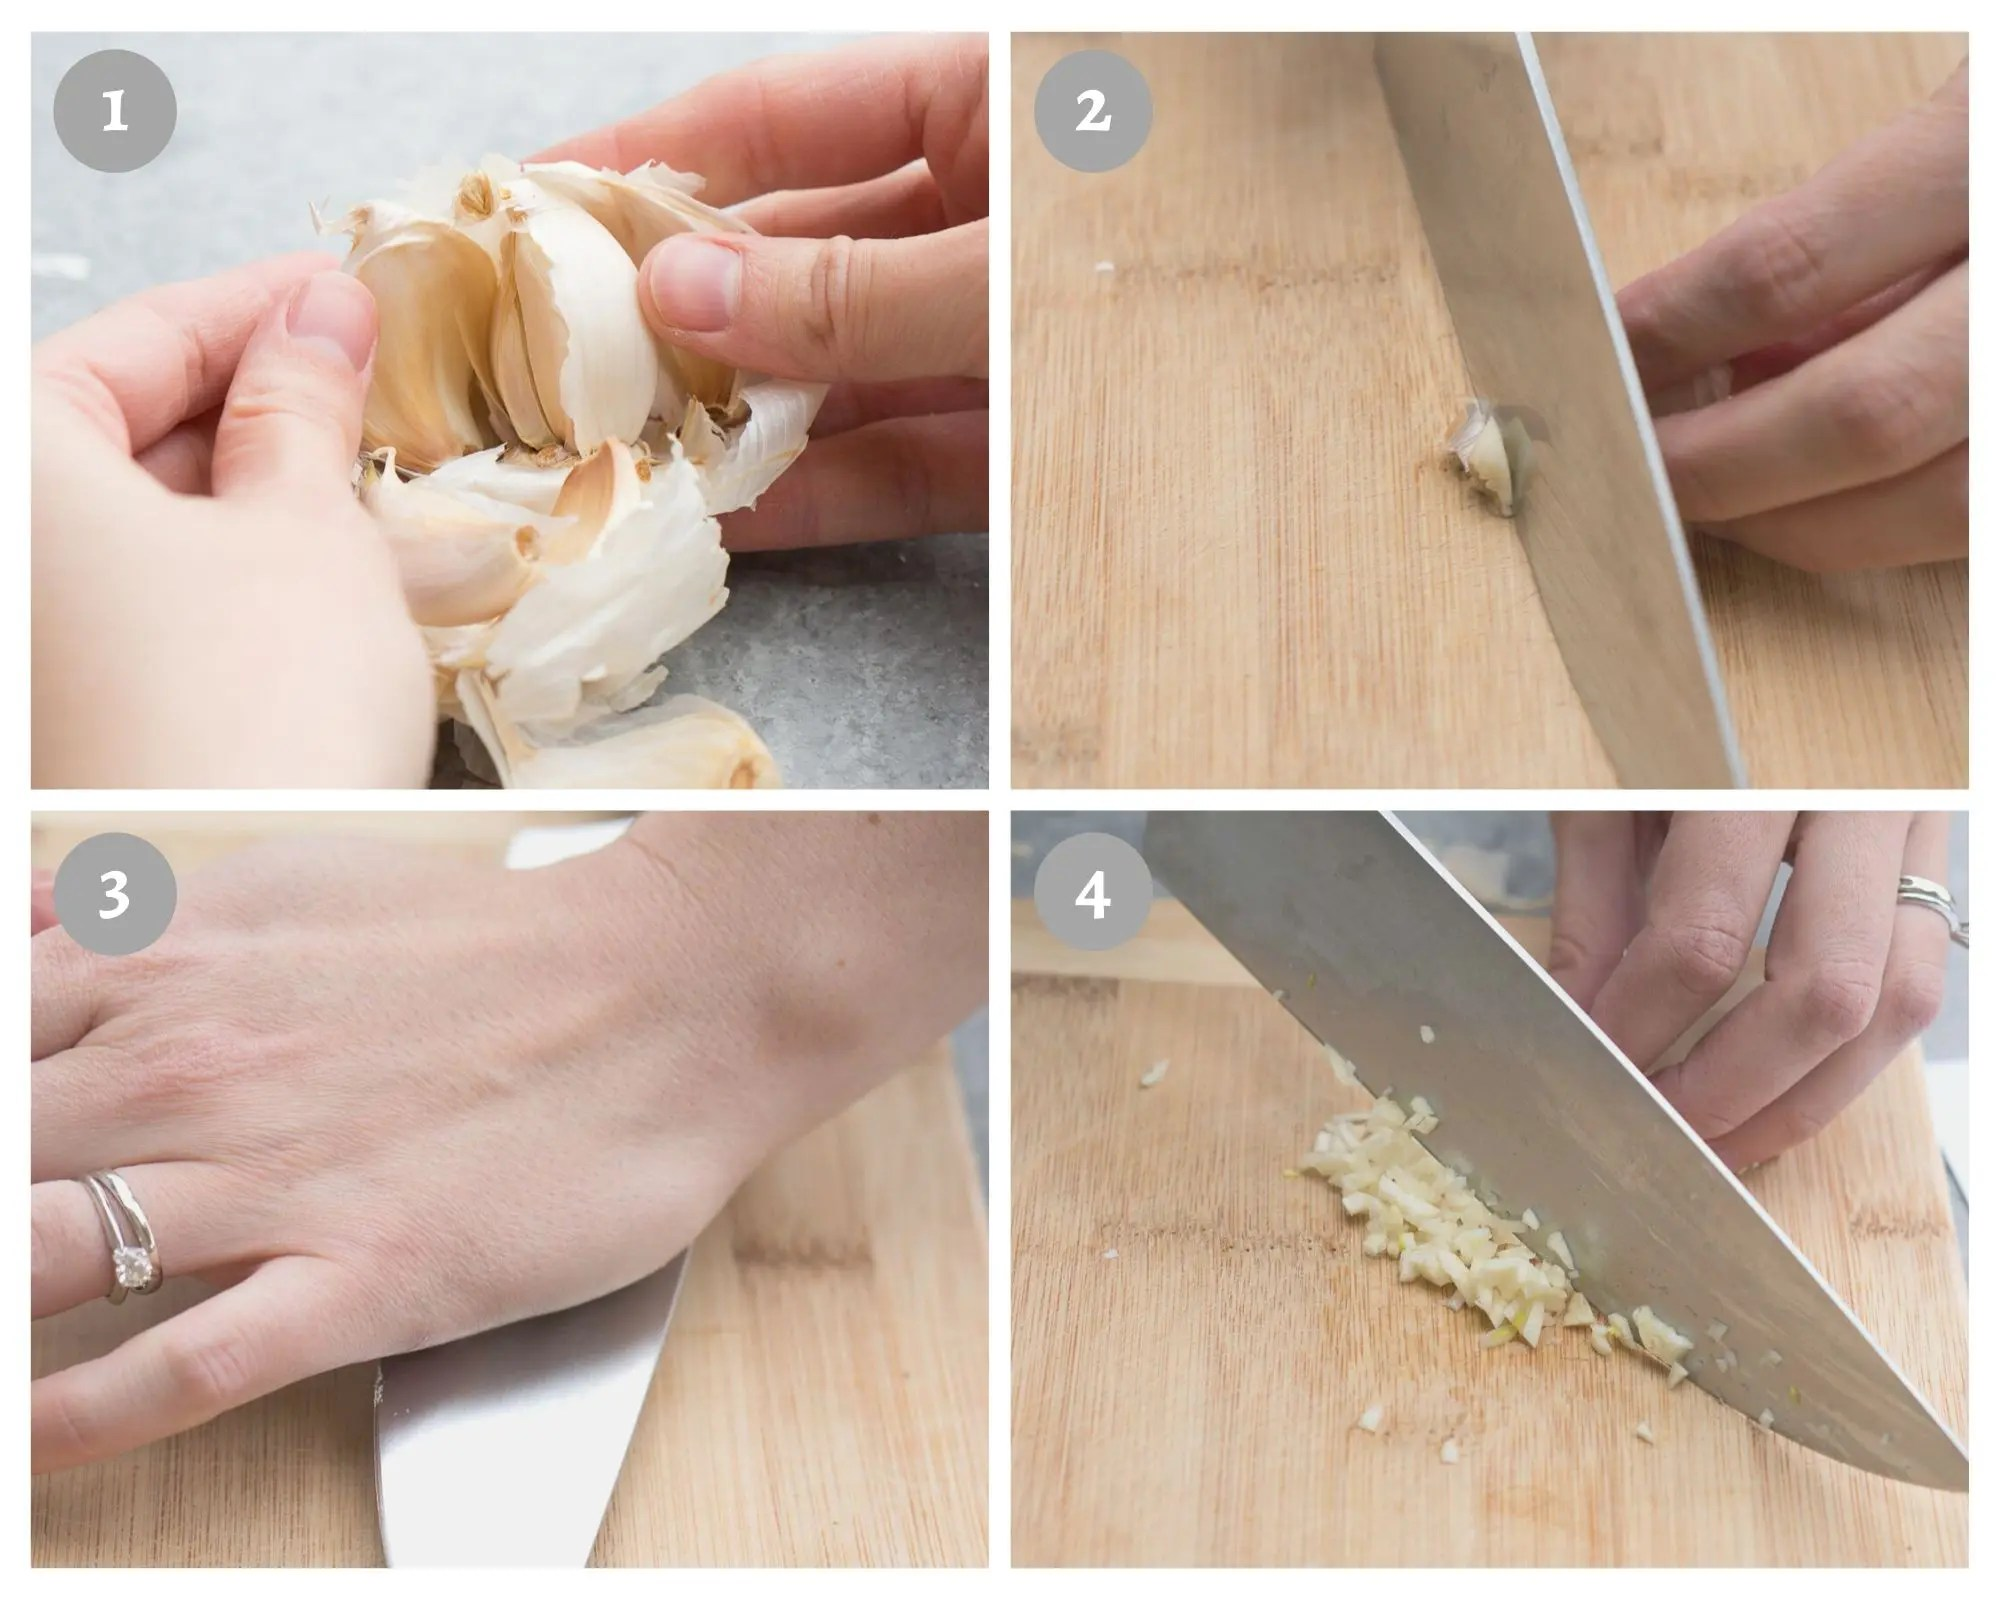 step by step visual on how to peel and mince garlic without a garlic press